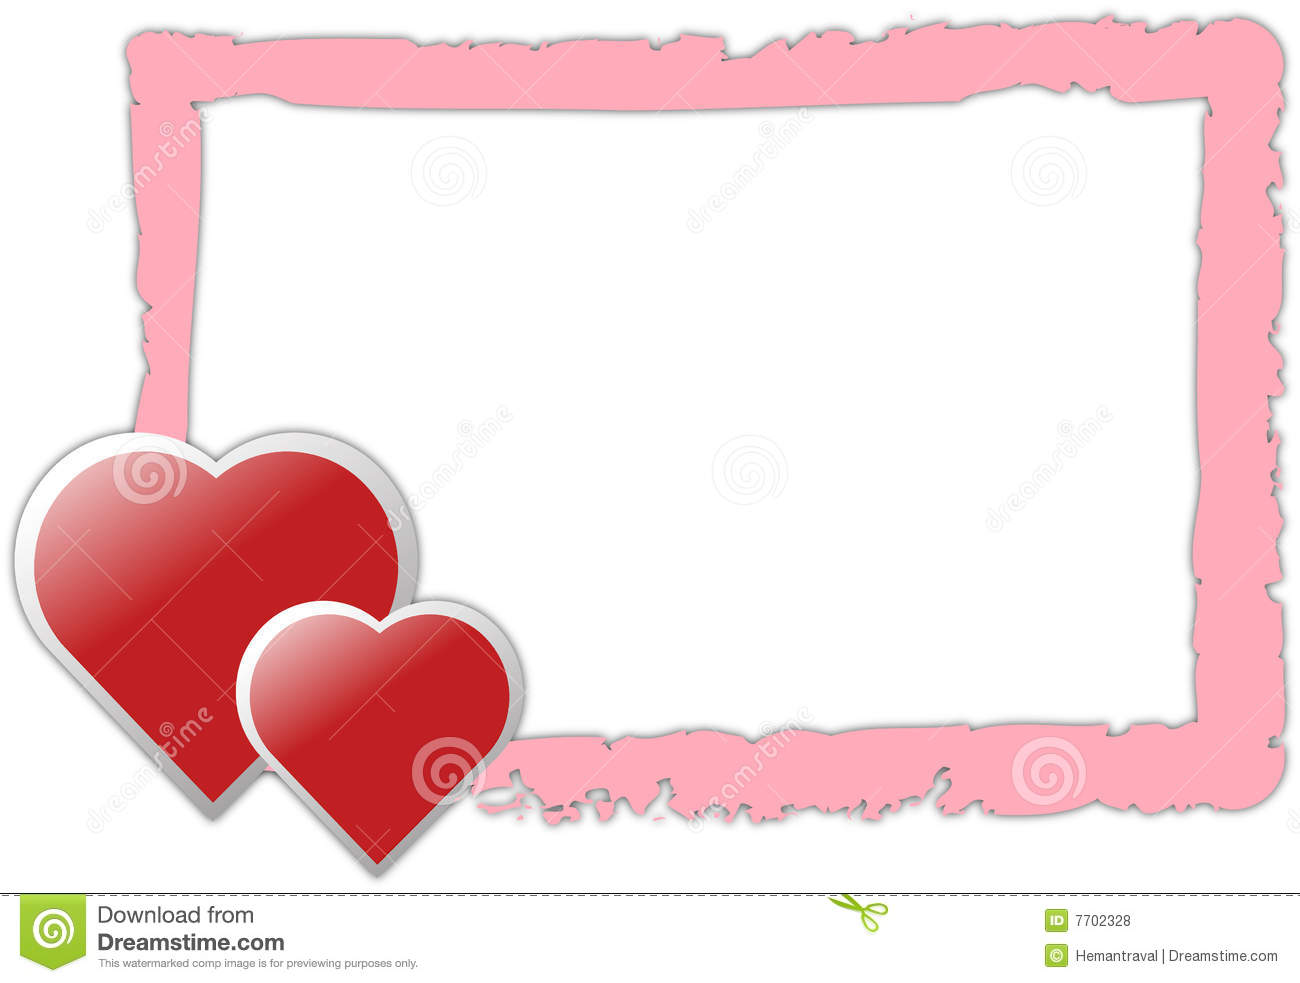 Valentine's Day Pink Border With Hearts and blank space for writing ...